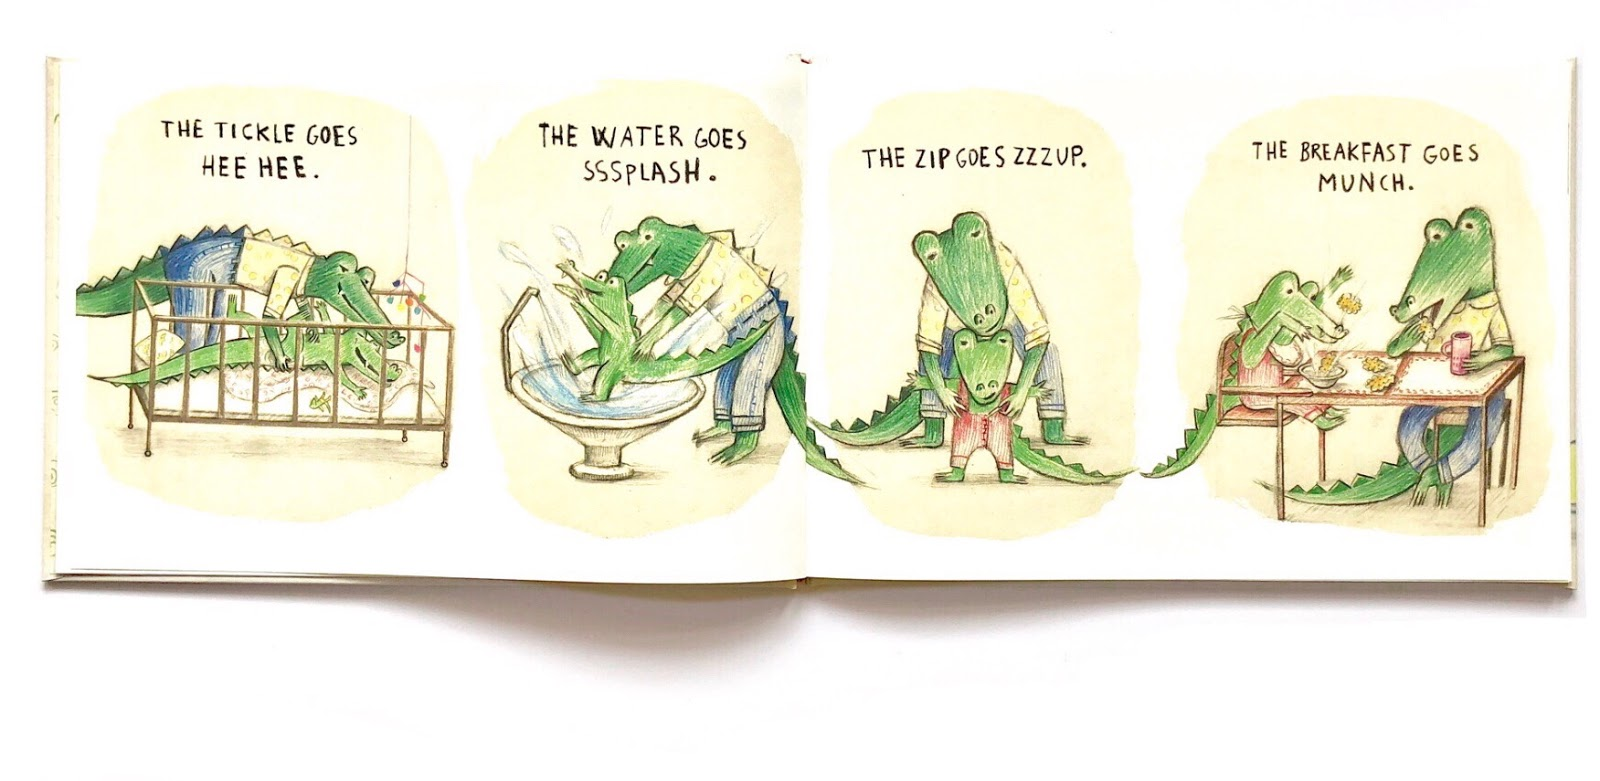 About attachment and Independence: What does the crocodile say